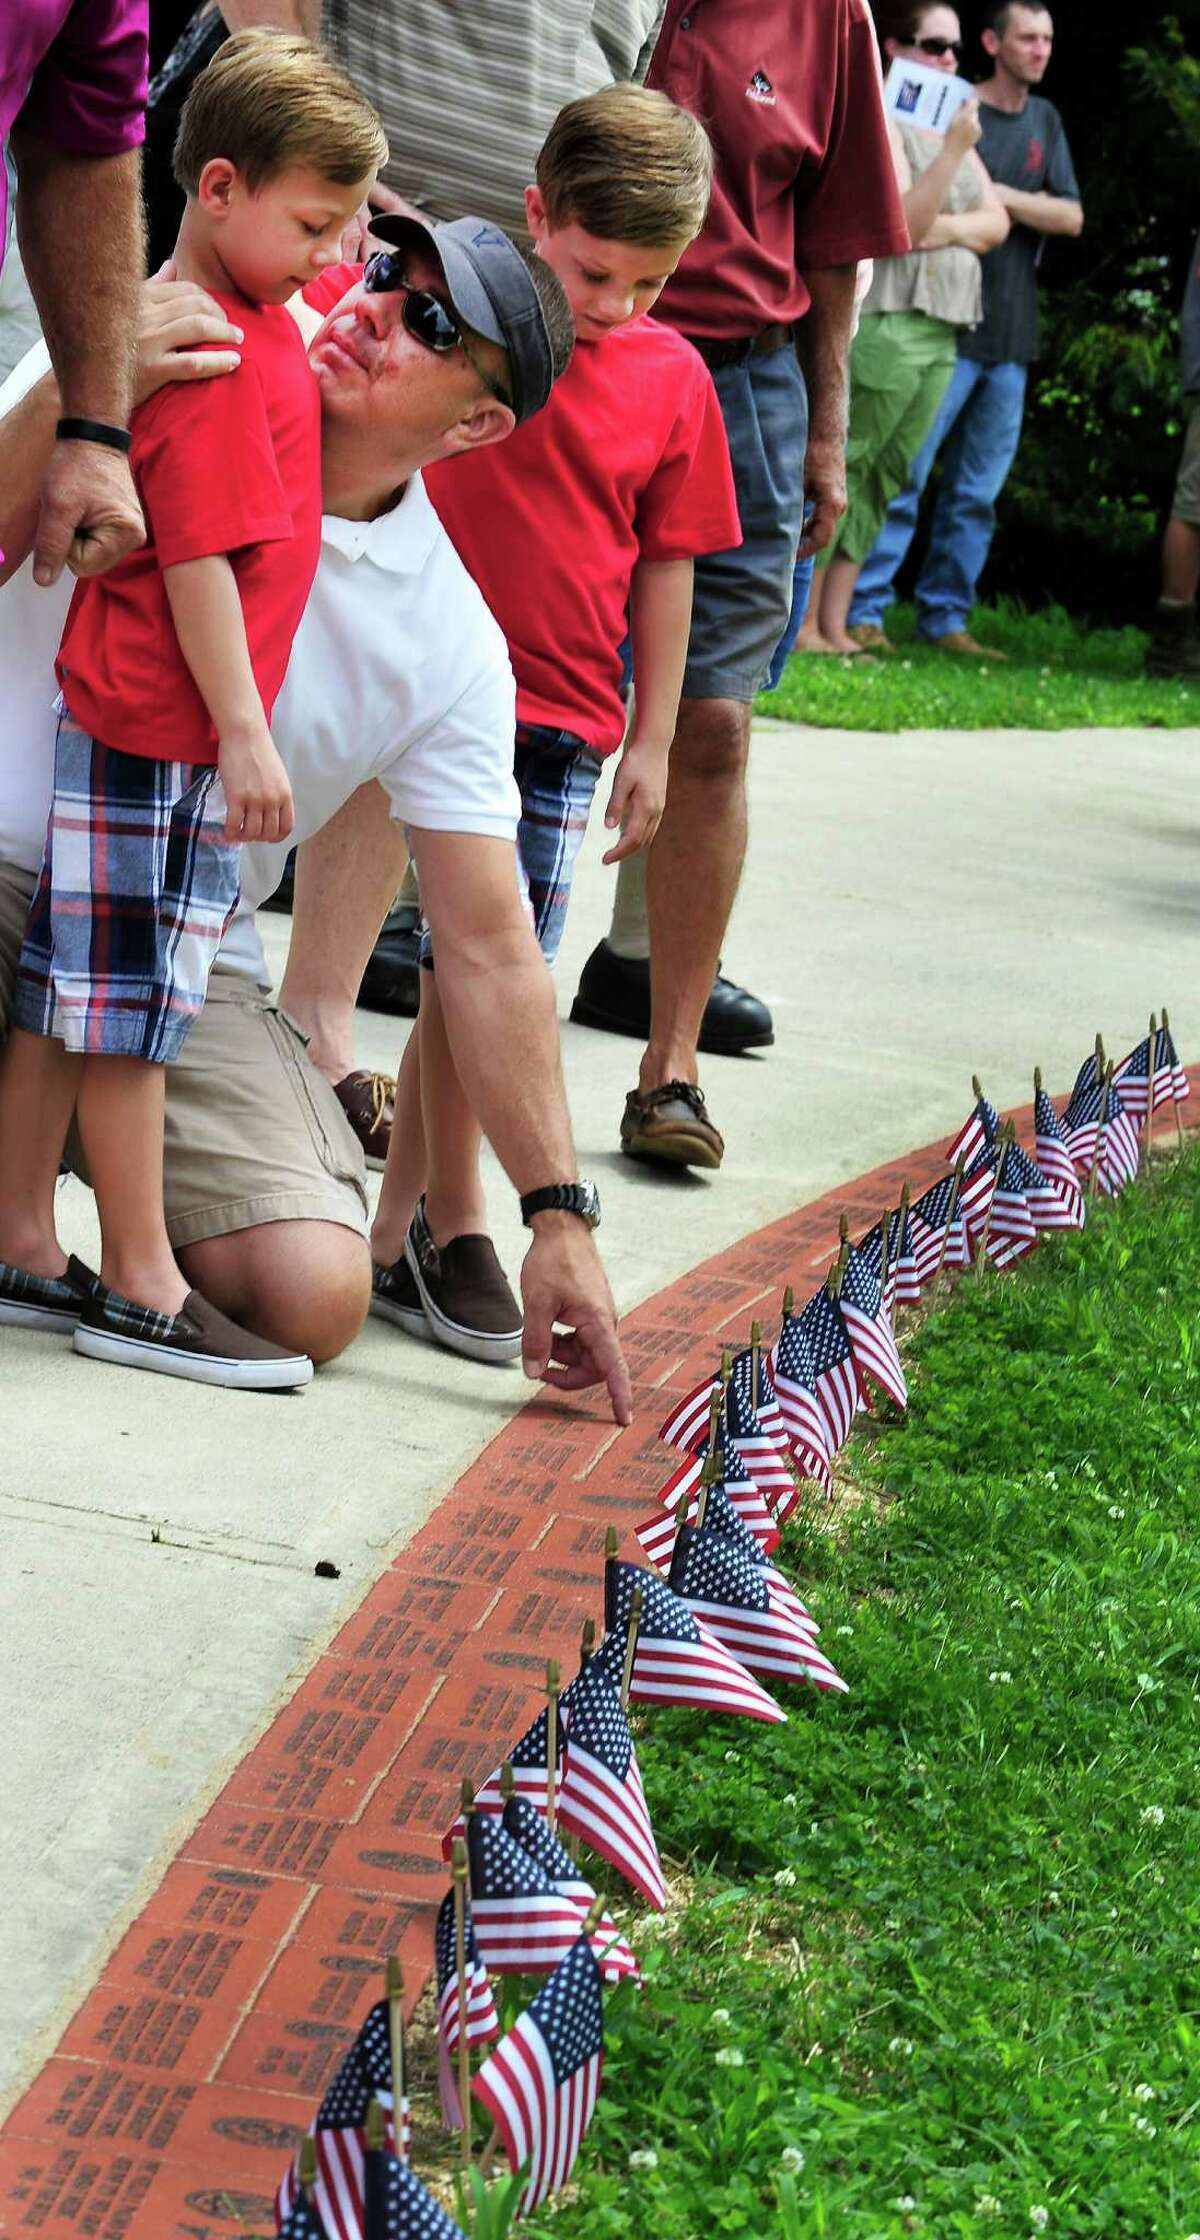 Phil Colla, of Brookfield, points out the brick honoring his grandfather to his twin sons, Michael, left, and P.J., both 6, as the Veterans Walkway of Honor dedication ceremony takes place at the Danbury War Memorial, in Danbury, Conn. Sunday, July 14, 2013.